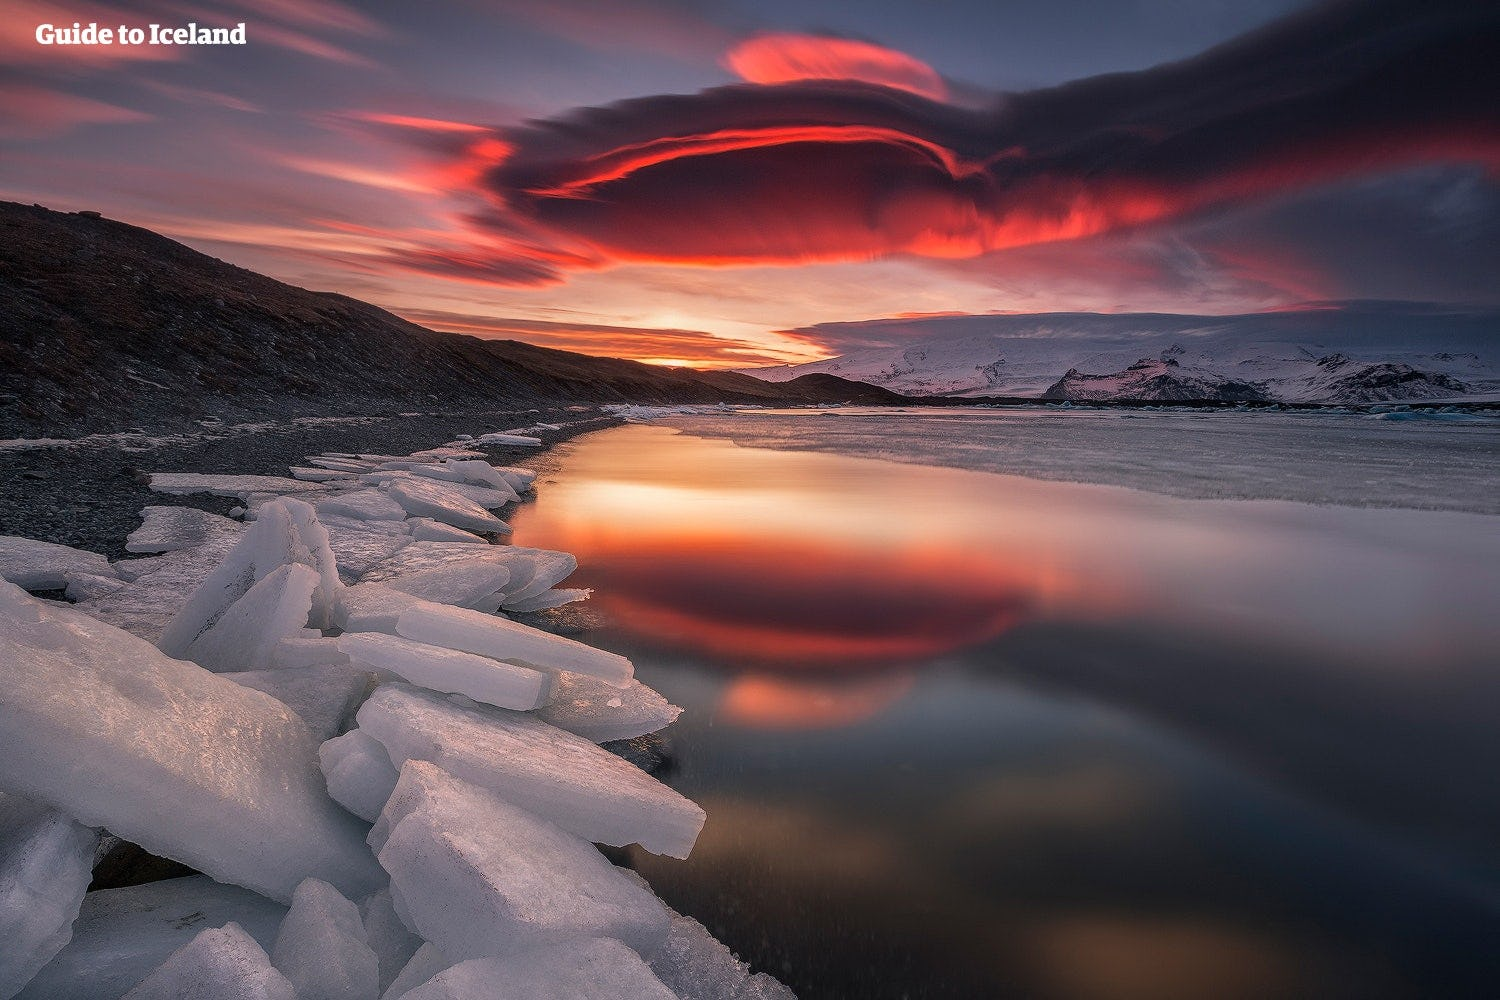 The sun is only in the sky for four hours or so in Iceland's winter, dying the skies above features such as the Jökulsárlón glacier lagoon in vivid colours.